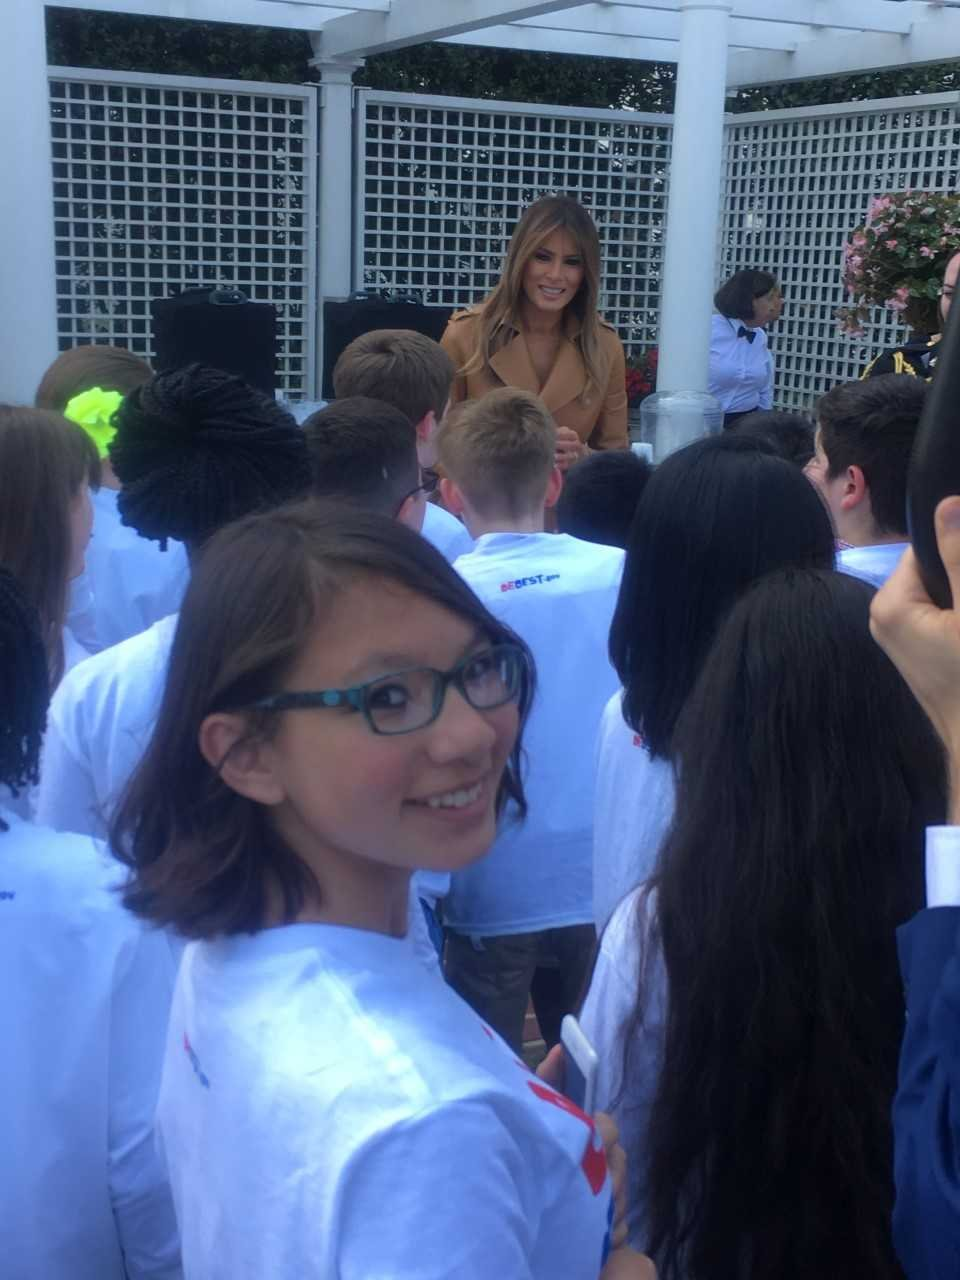 Kalani was in the audience as First Lady Melania Trump launched her 'Be Best' campaign. (Source: Jared Goldberg)